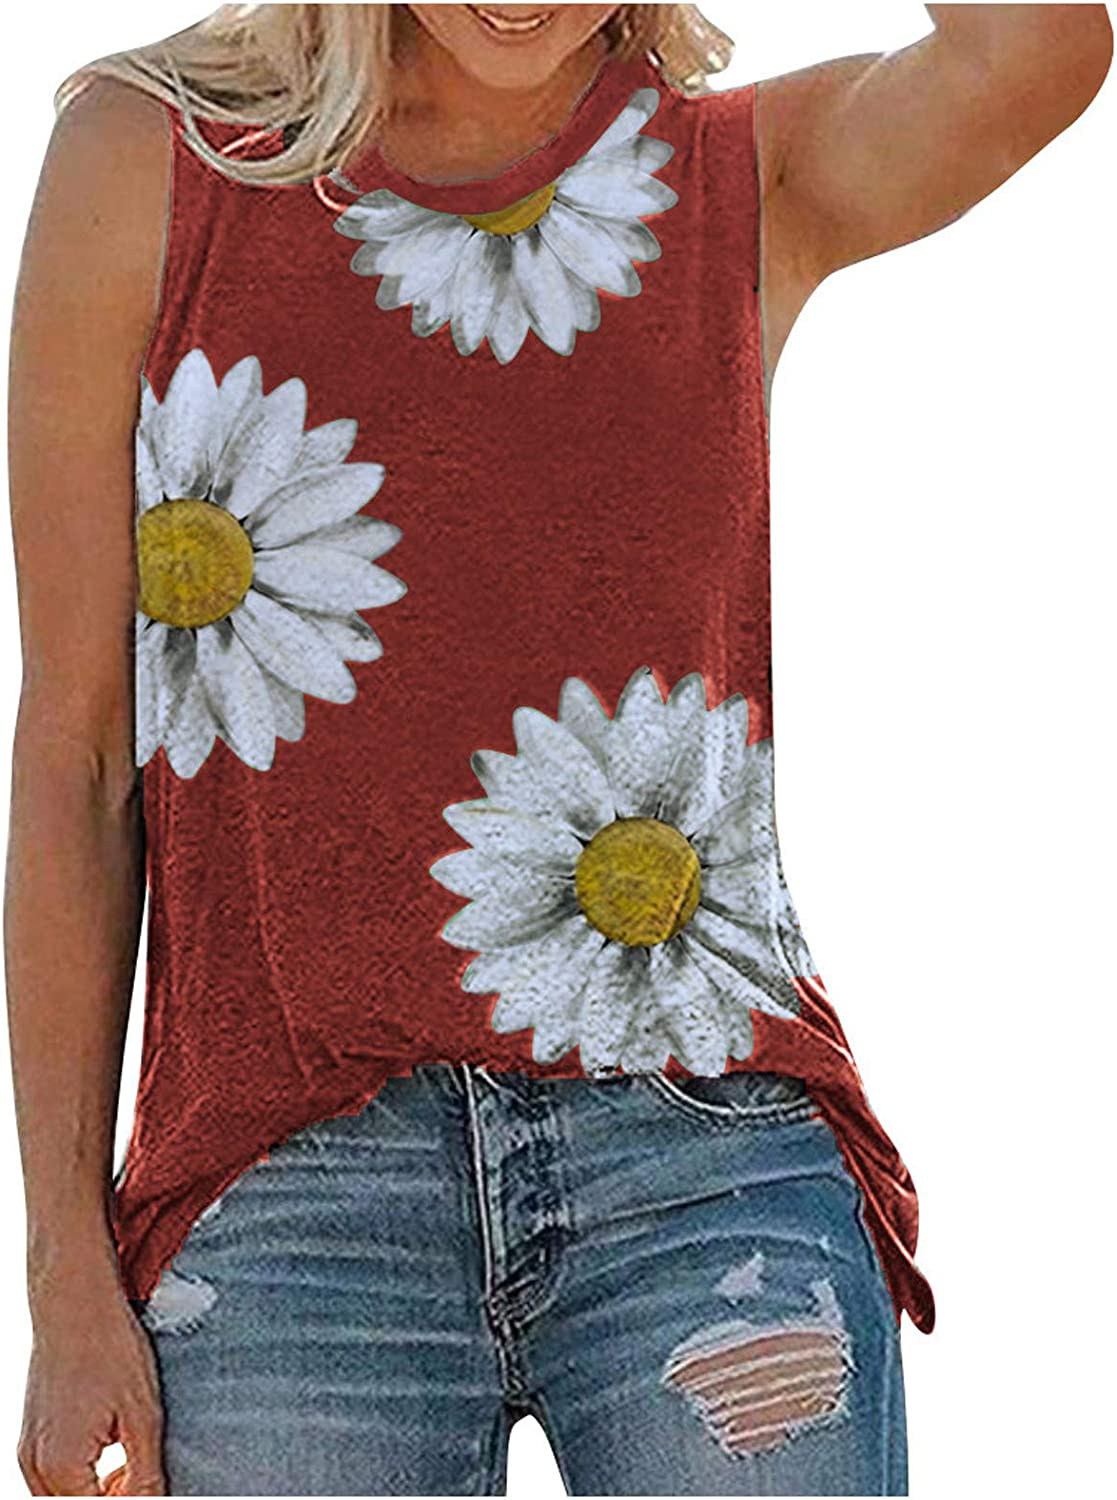 Tank Tops for Women Casual Summer, Womens Crop Tops Fashion Graphic Printed Sleeveless Blouse Loose Fit Tunics